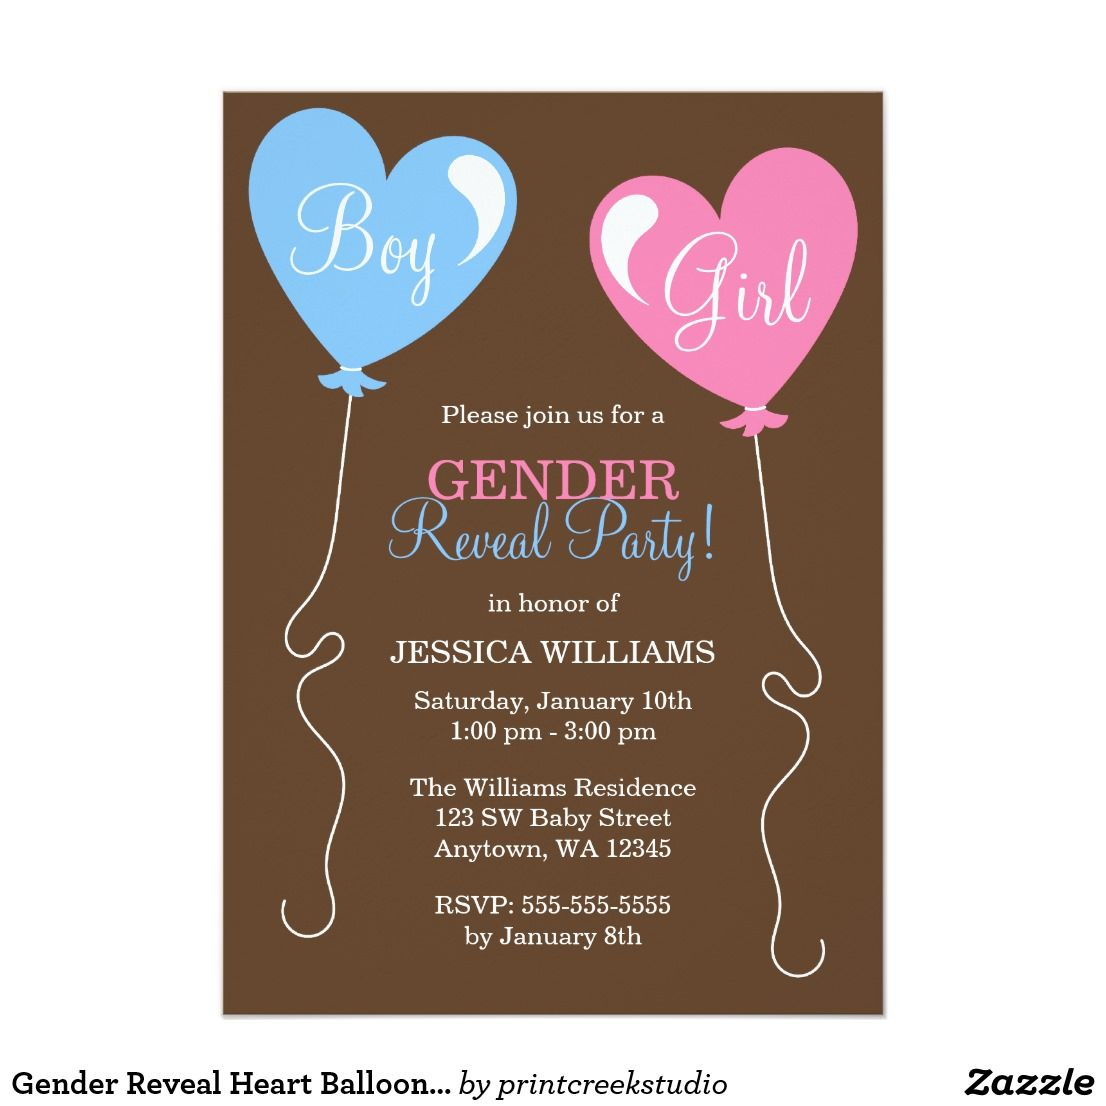 Gender reveal heart balloons pink and blue invitation ch de beb gender reveal heart balloons pink and blue invitation stopboris Images